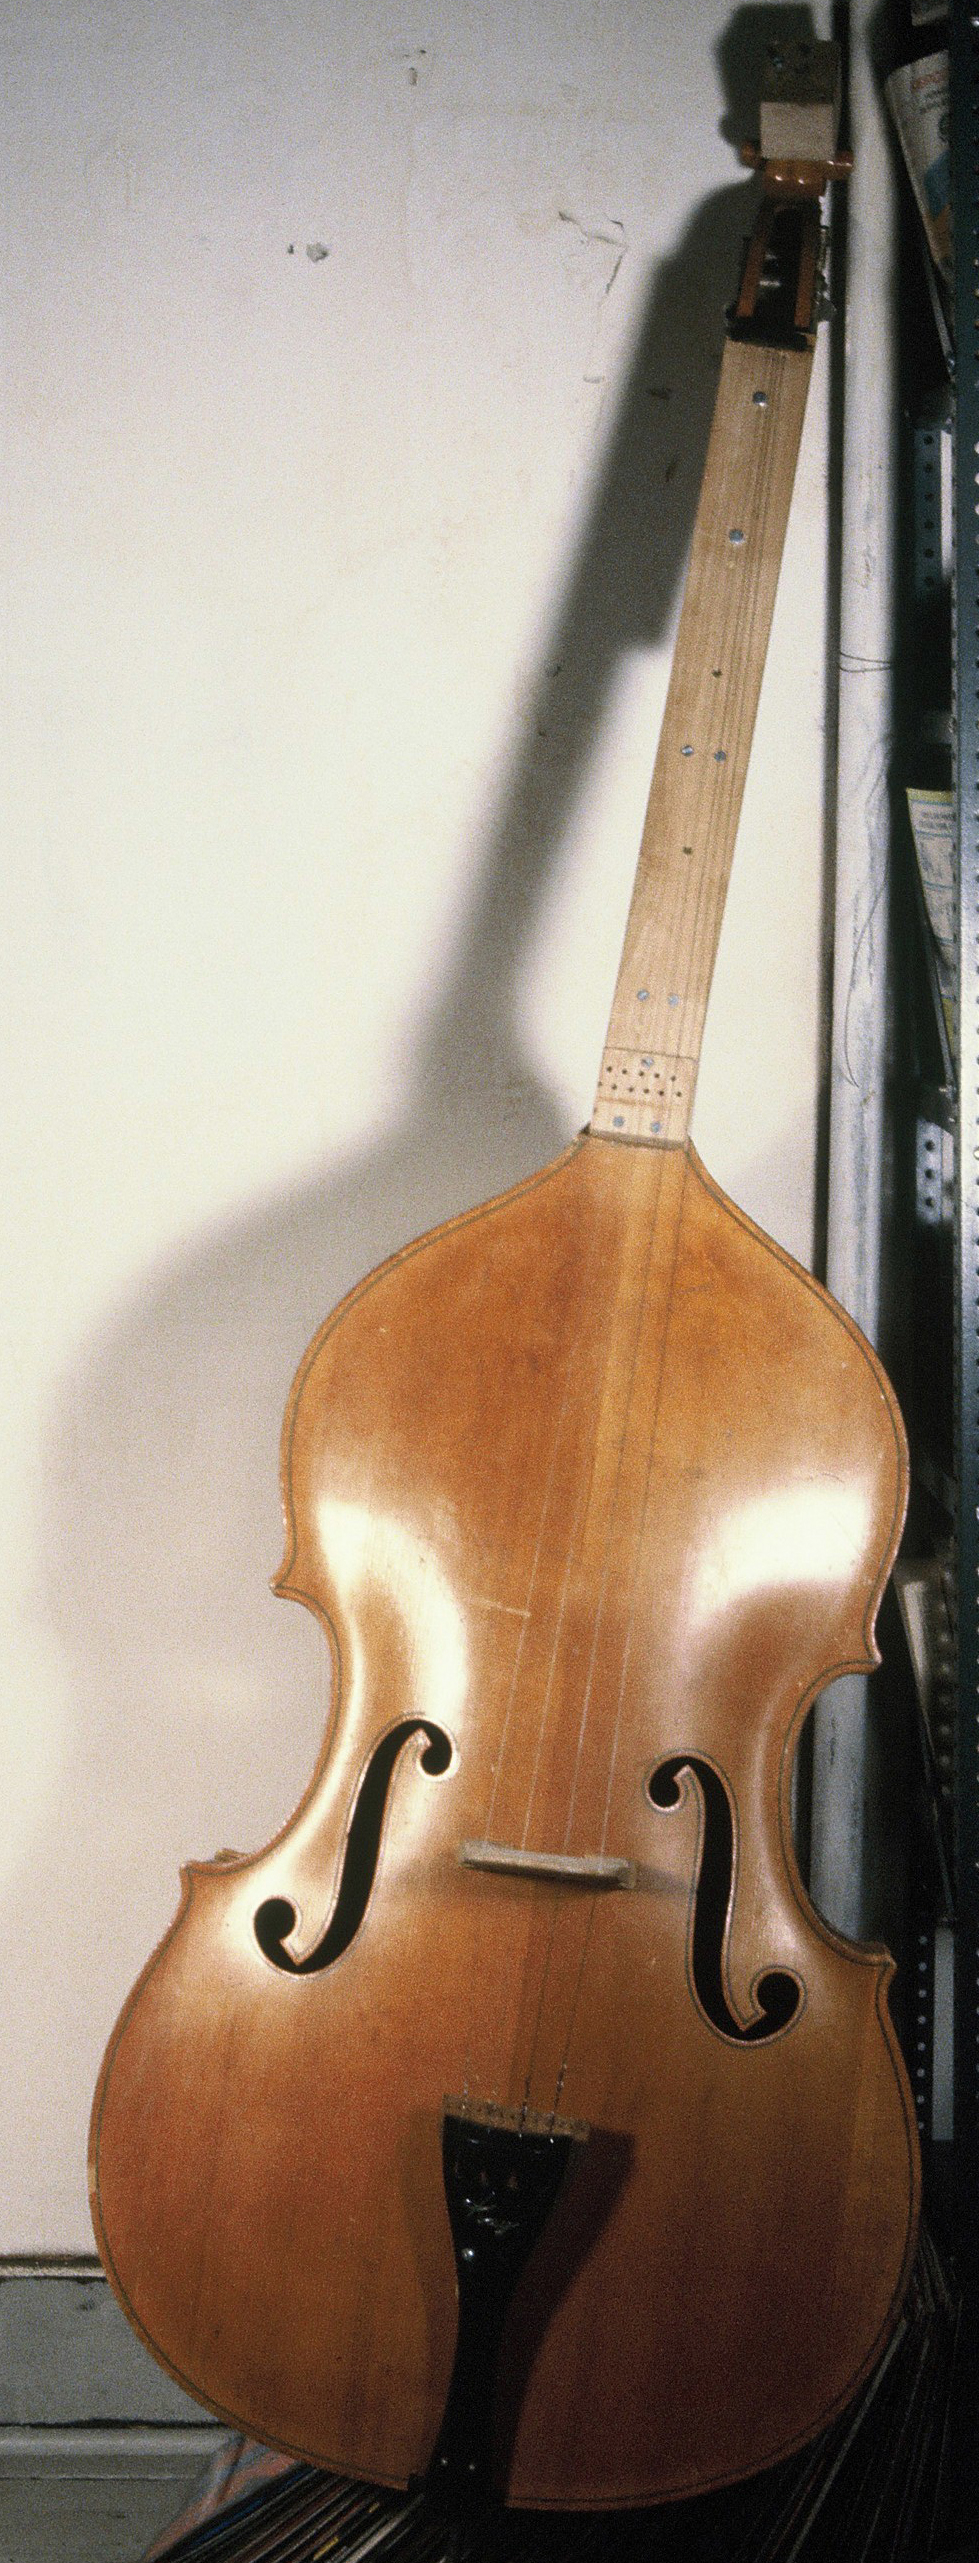 Excited Strings Bass with extended neck and (planned) sympathetic strings, Sackett Street Studio, 1980